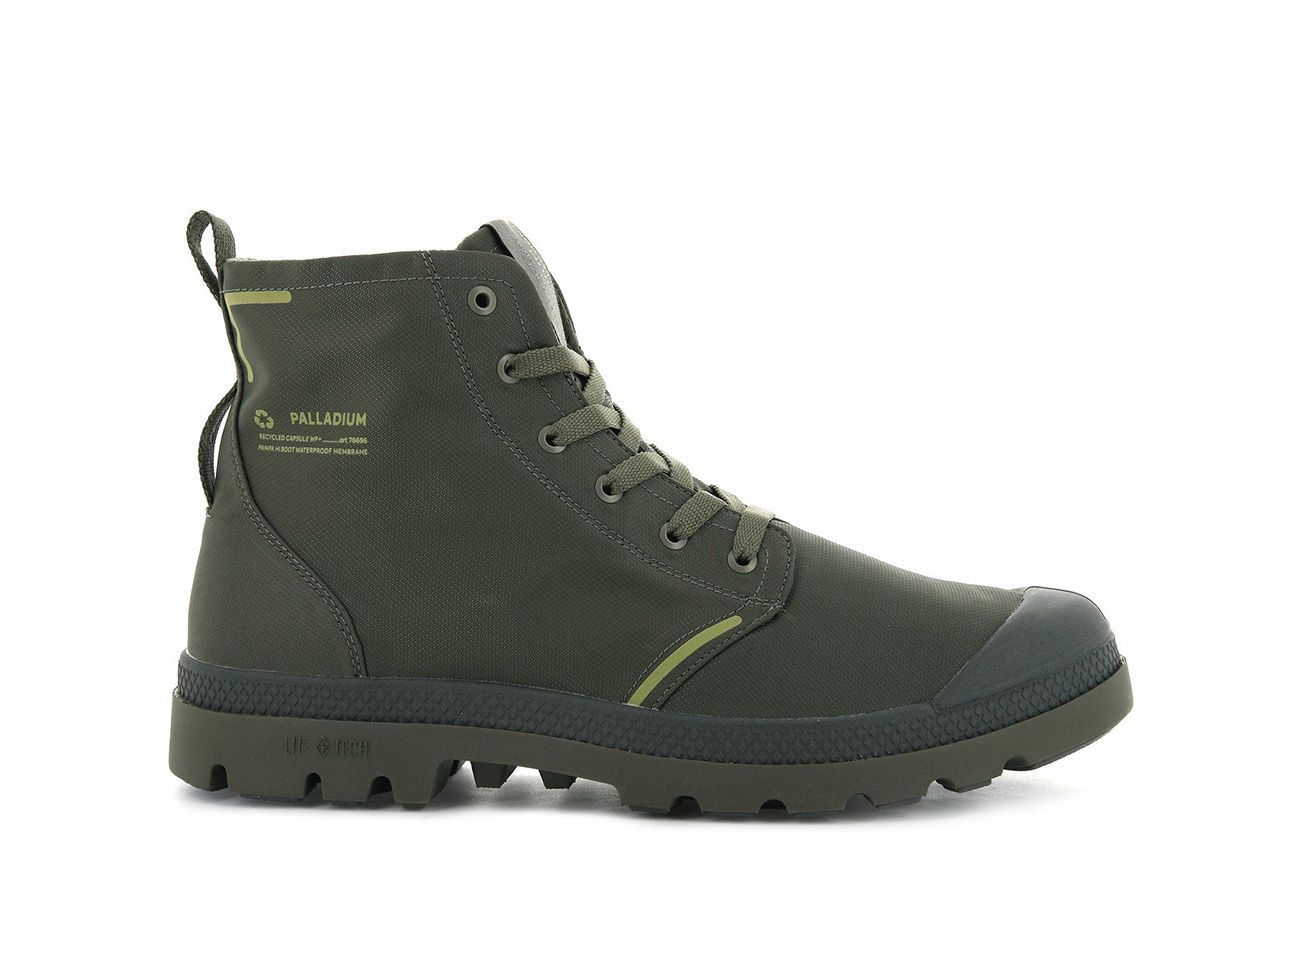 Palladium Pampa Lite+ Recycle WP+ in Dusky Green